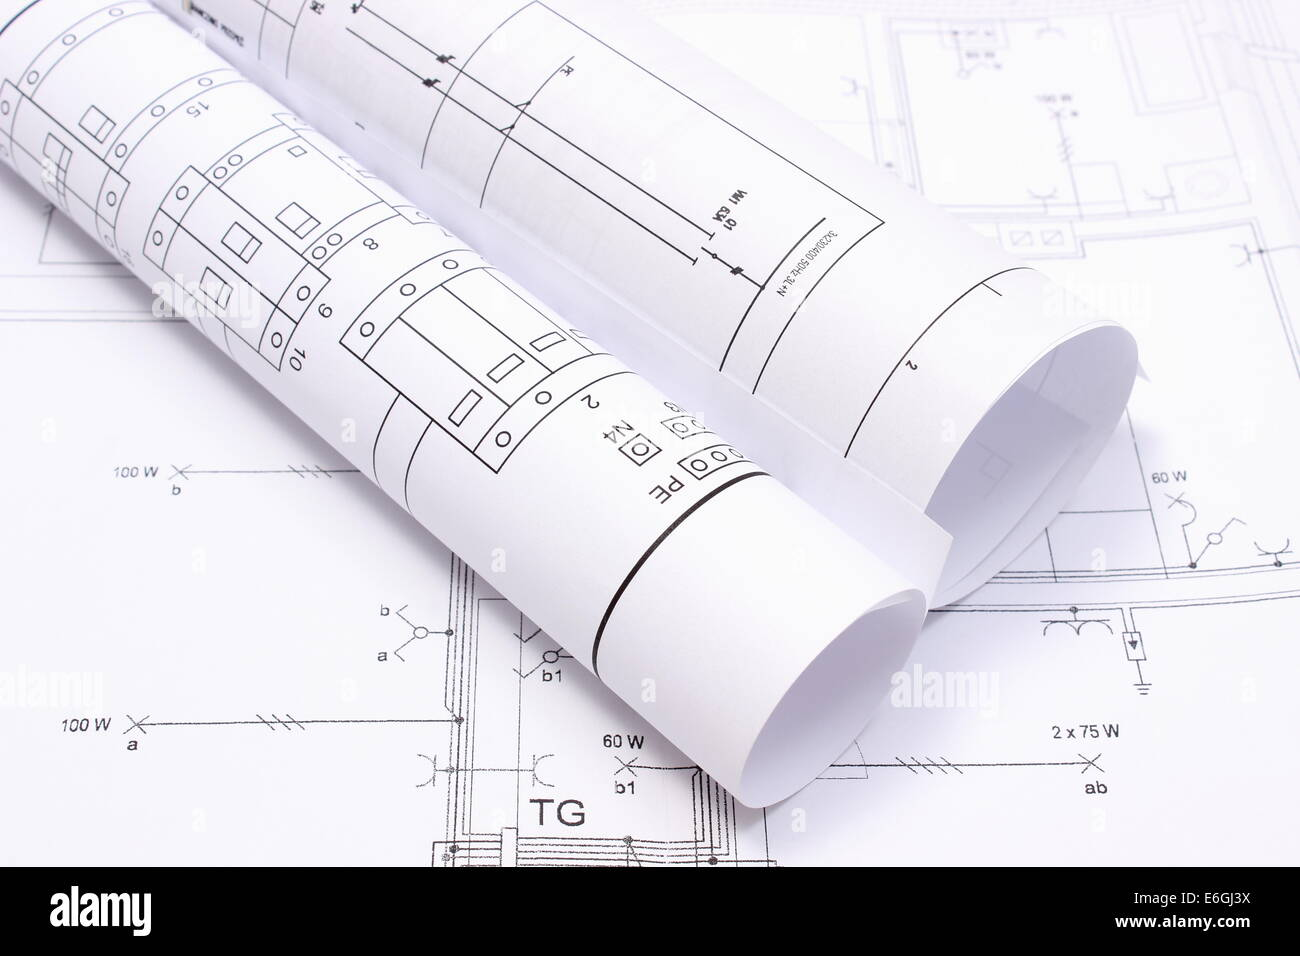 Rolled Electrical Diagrams Lying On Construction Drawing Of House In Drawings For The Projects Engineer Jobs